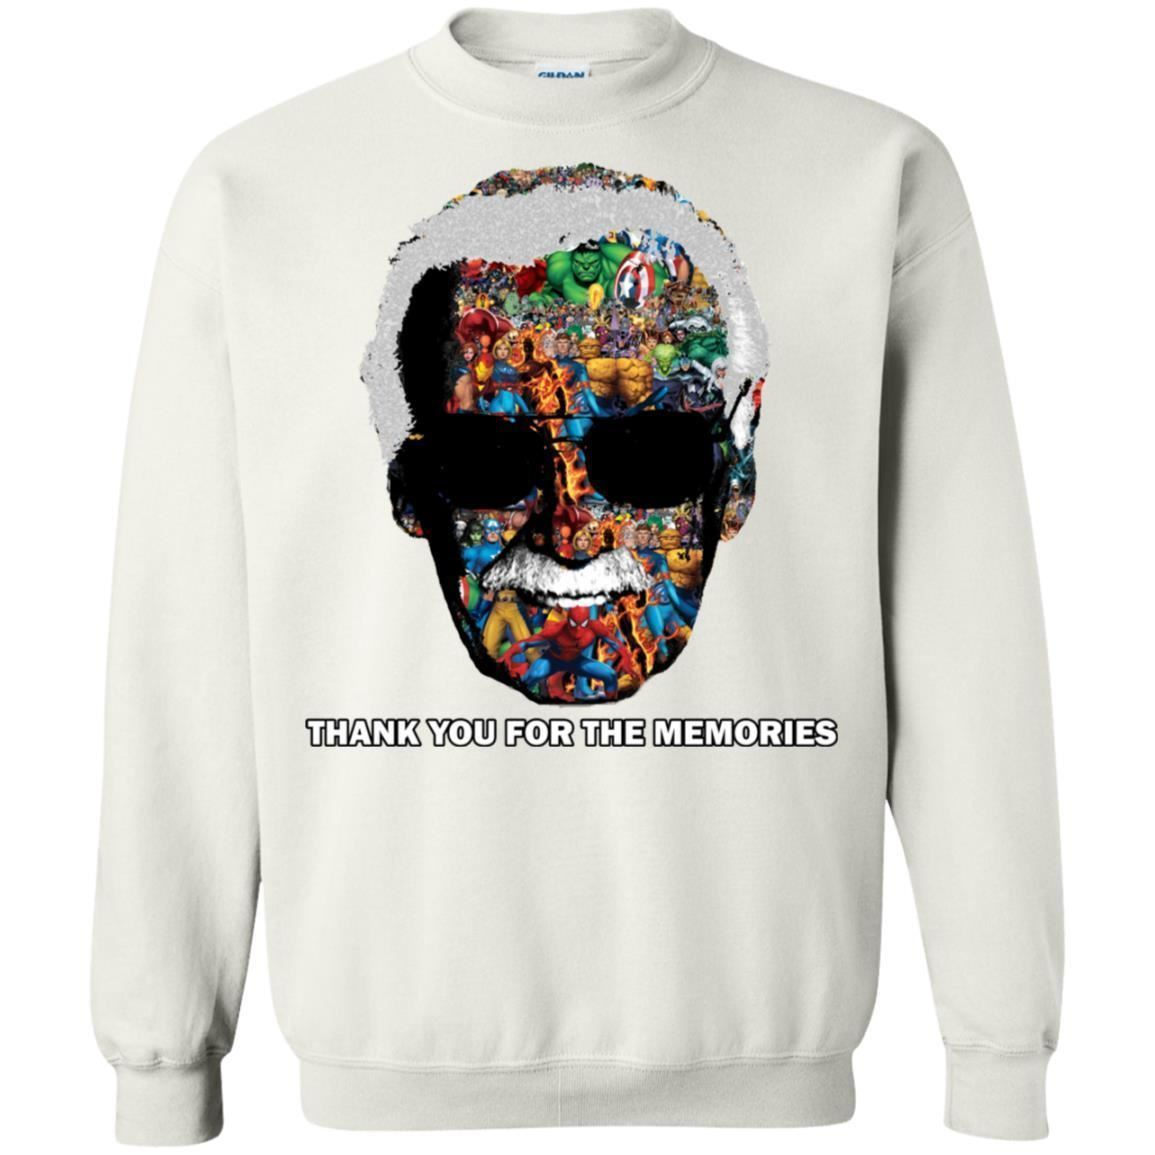 Thank You For The Memories Tee Shirt  - Inspired By Stan Lee Sweatshirt - Super image 2